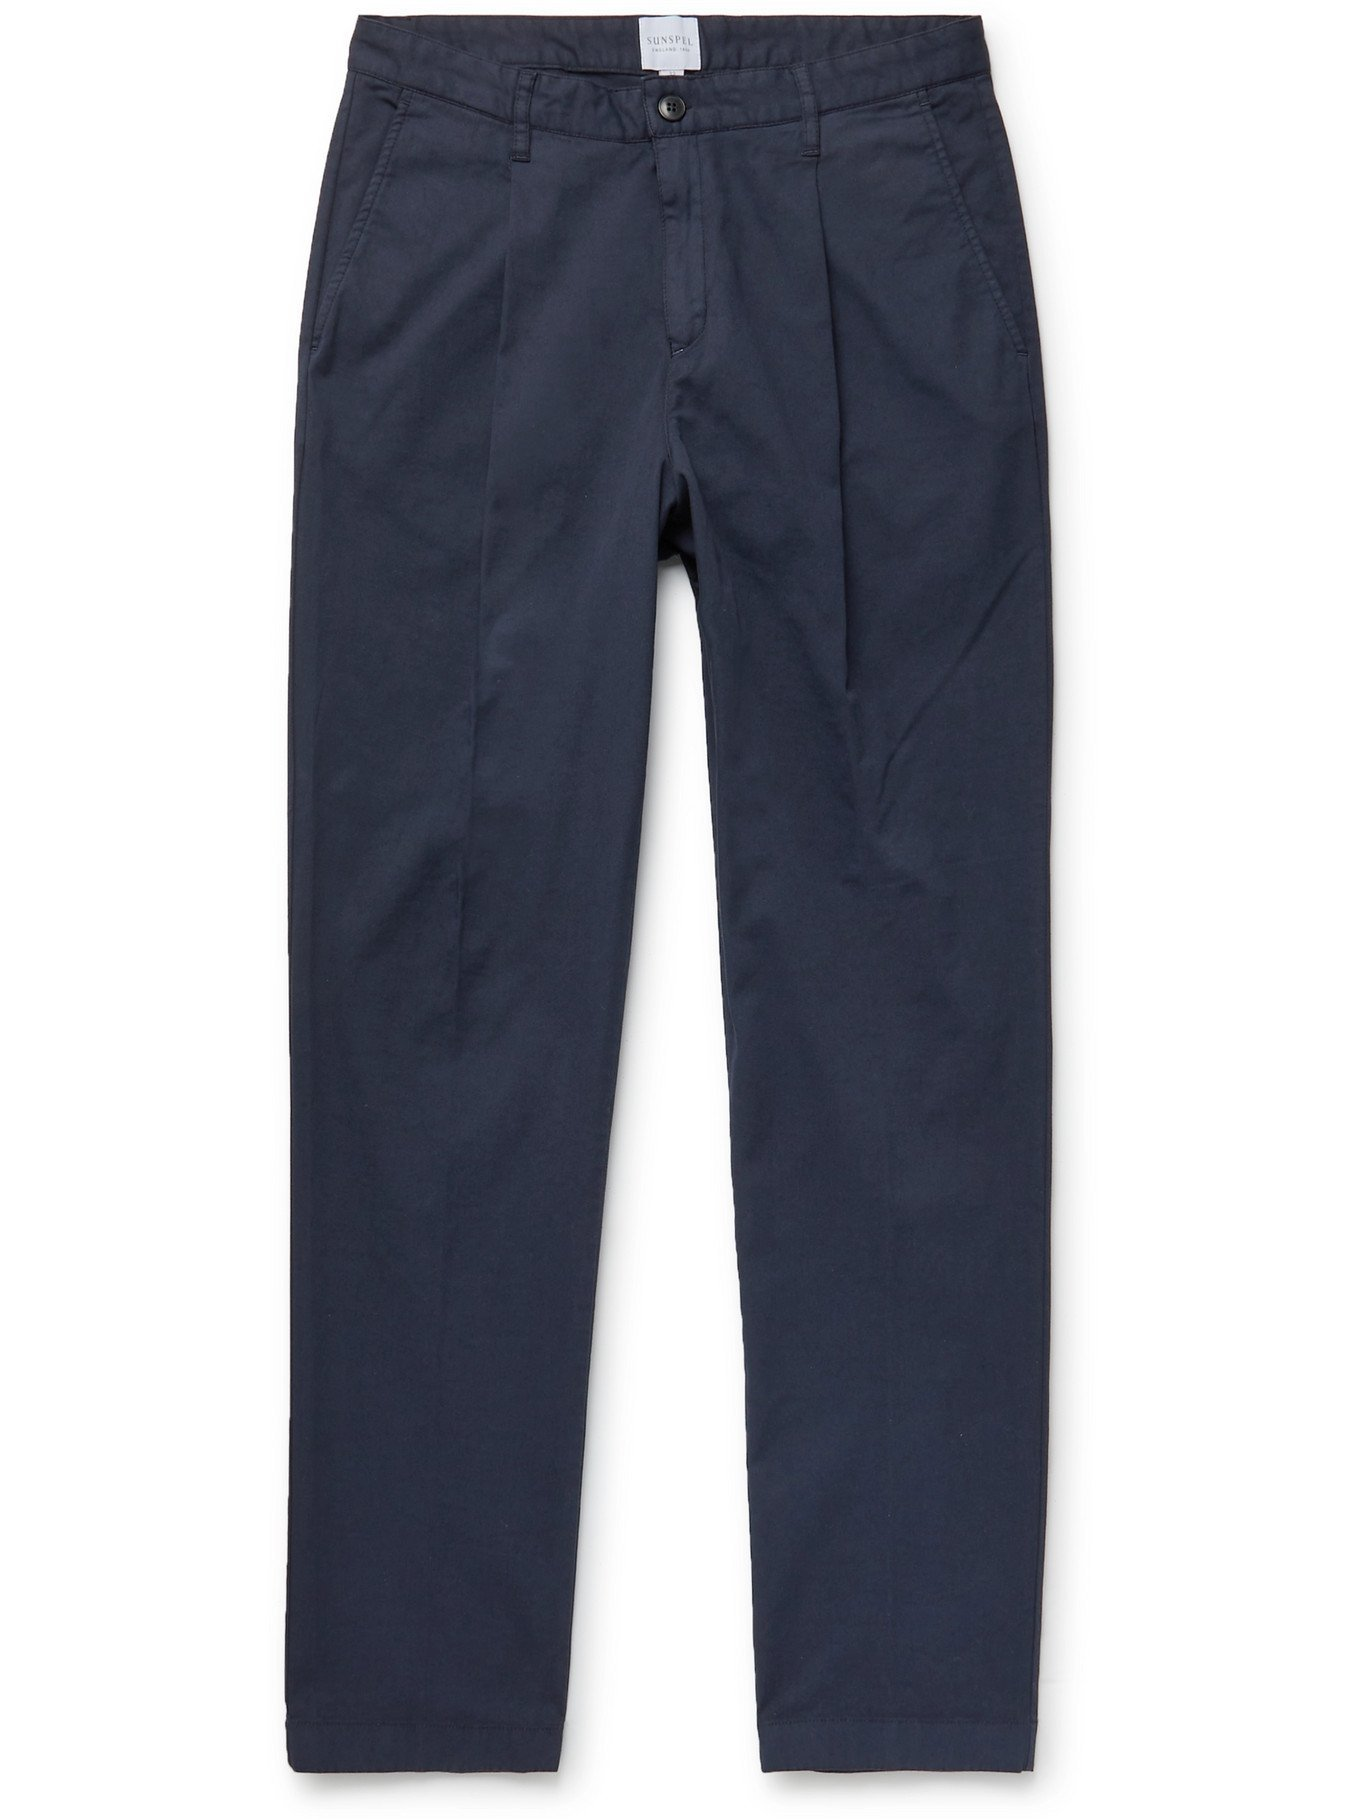 SUNSPEL - Pleated Garment-Dyed Cotton-Blend Drill Trousers - Blue - UK/US 32